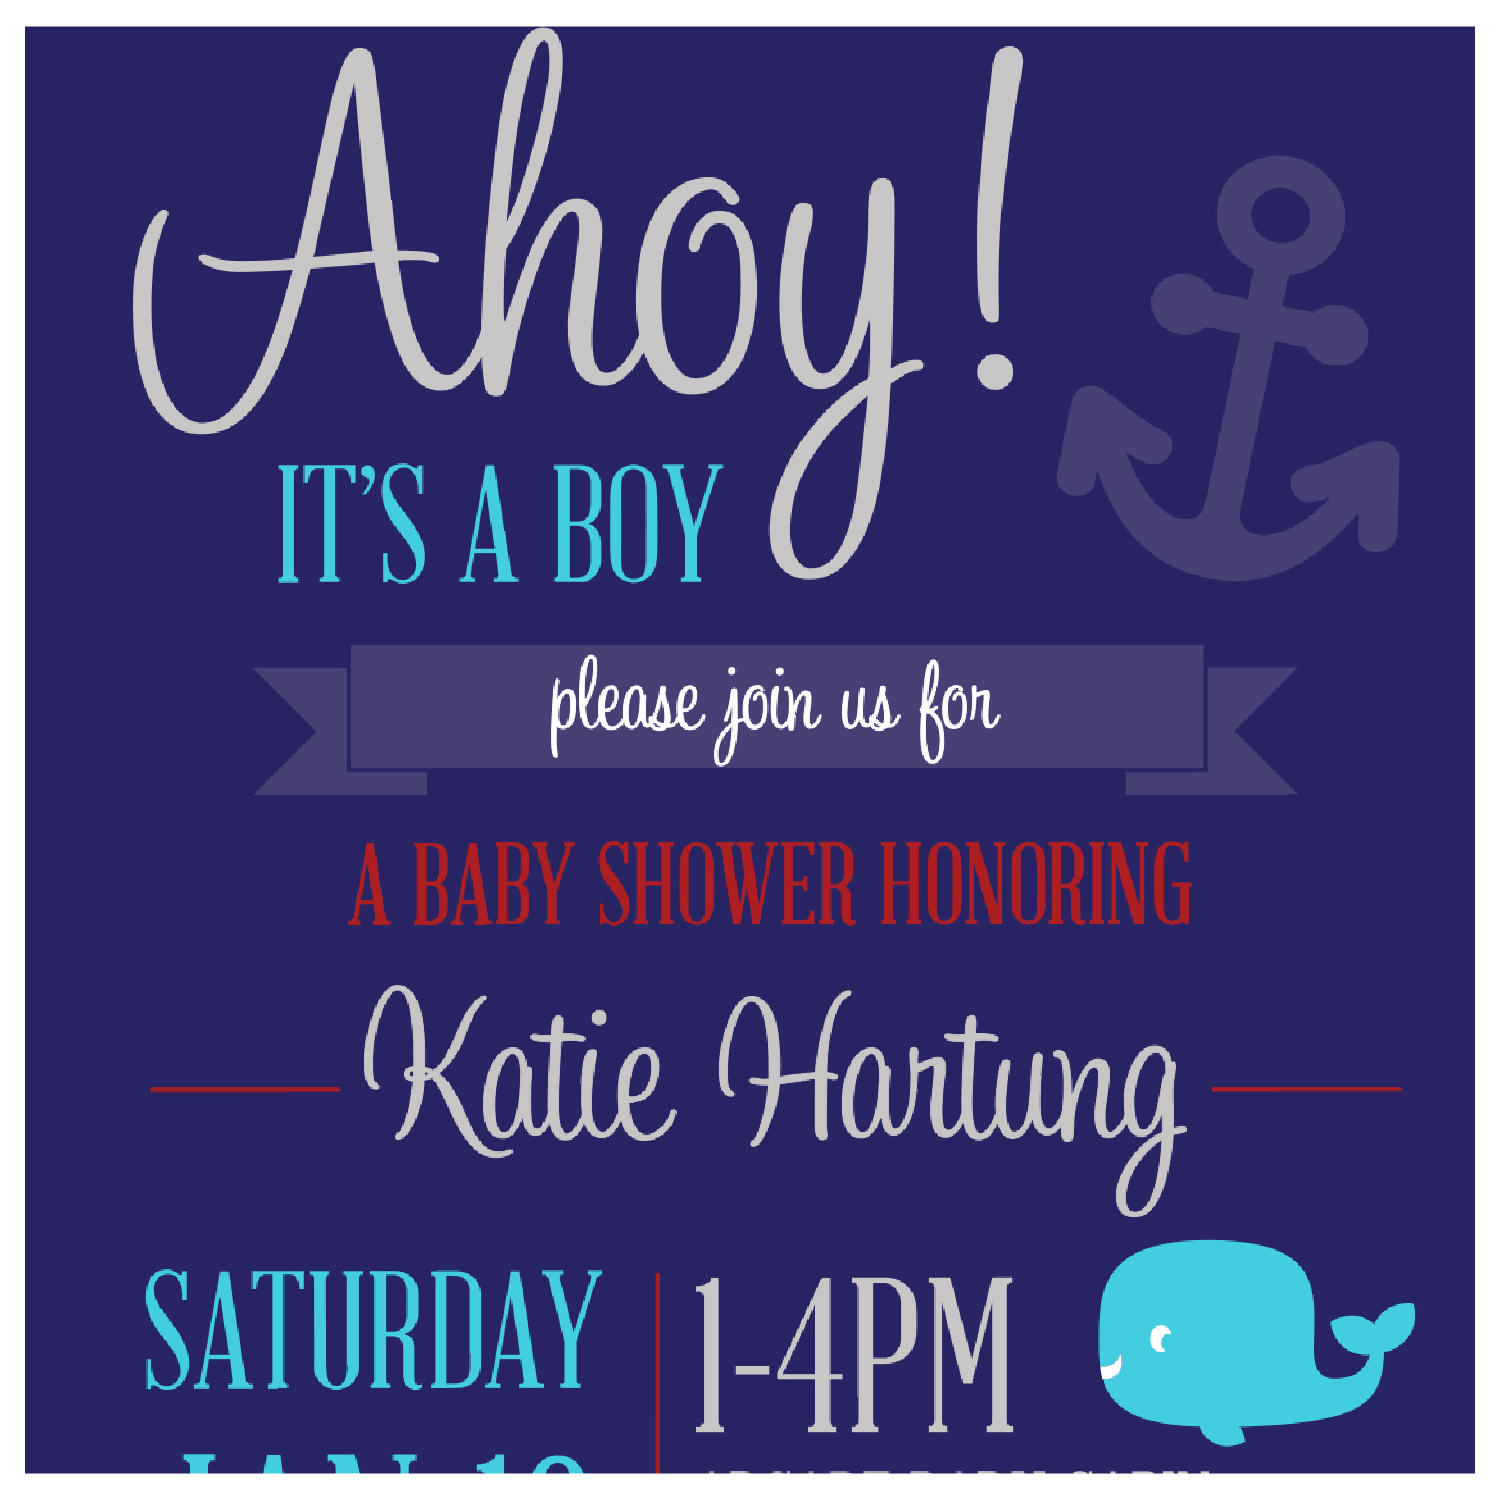 Invitations Katie Baby Shower-02.png